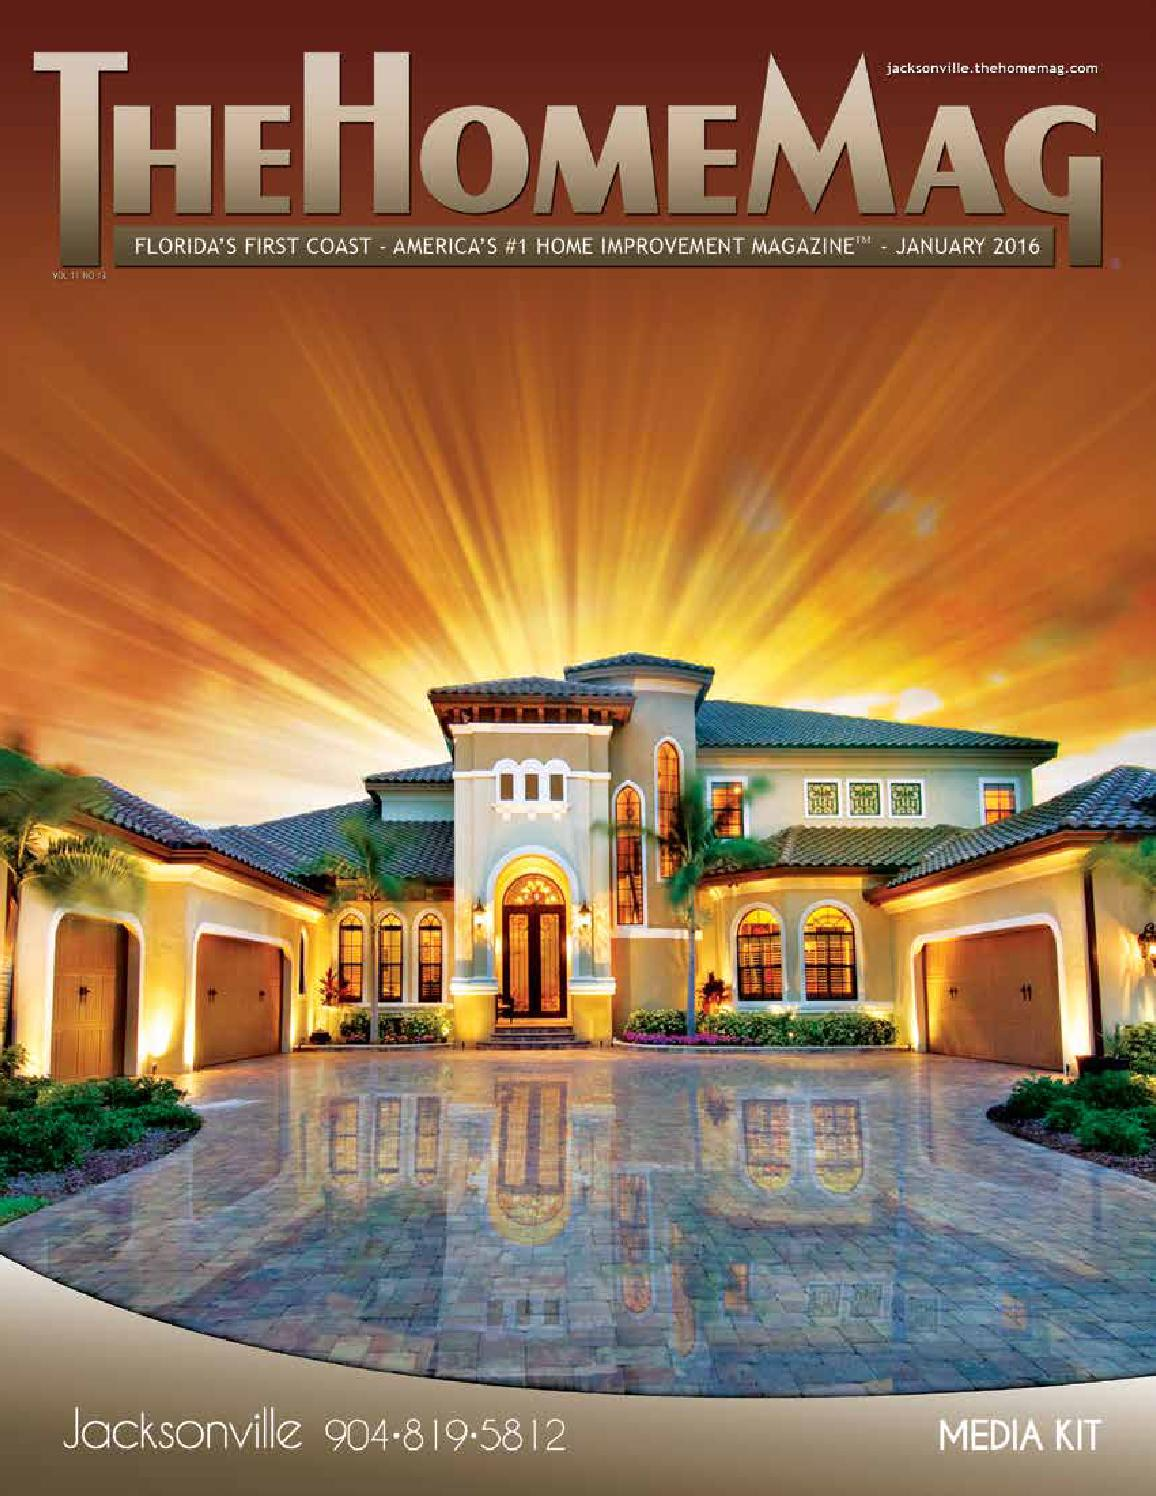 Thehomemag jacksonville media kit 2016 by first coast for The home mag houston